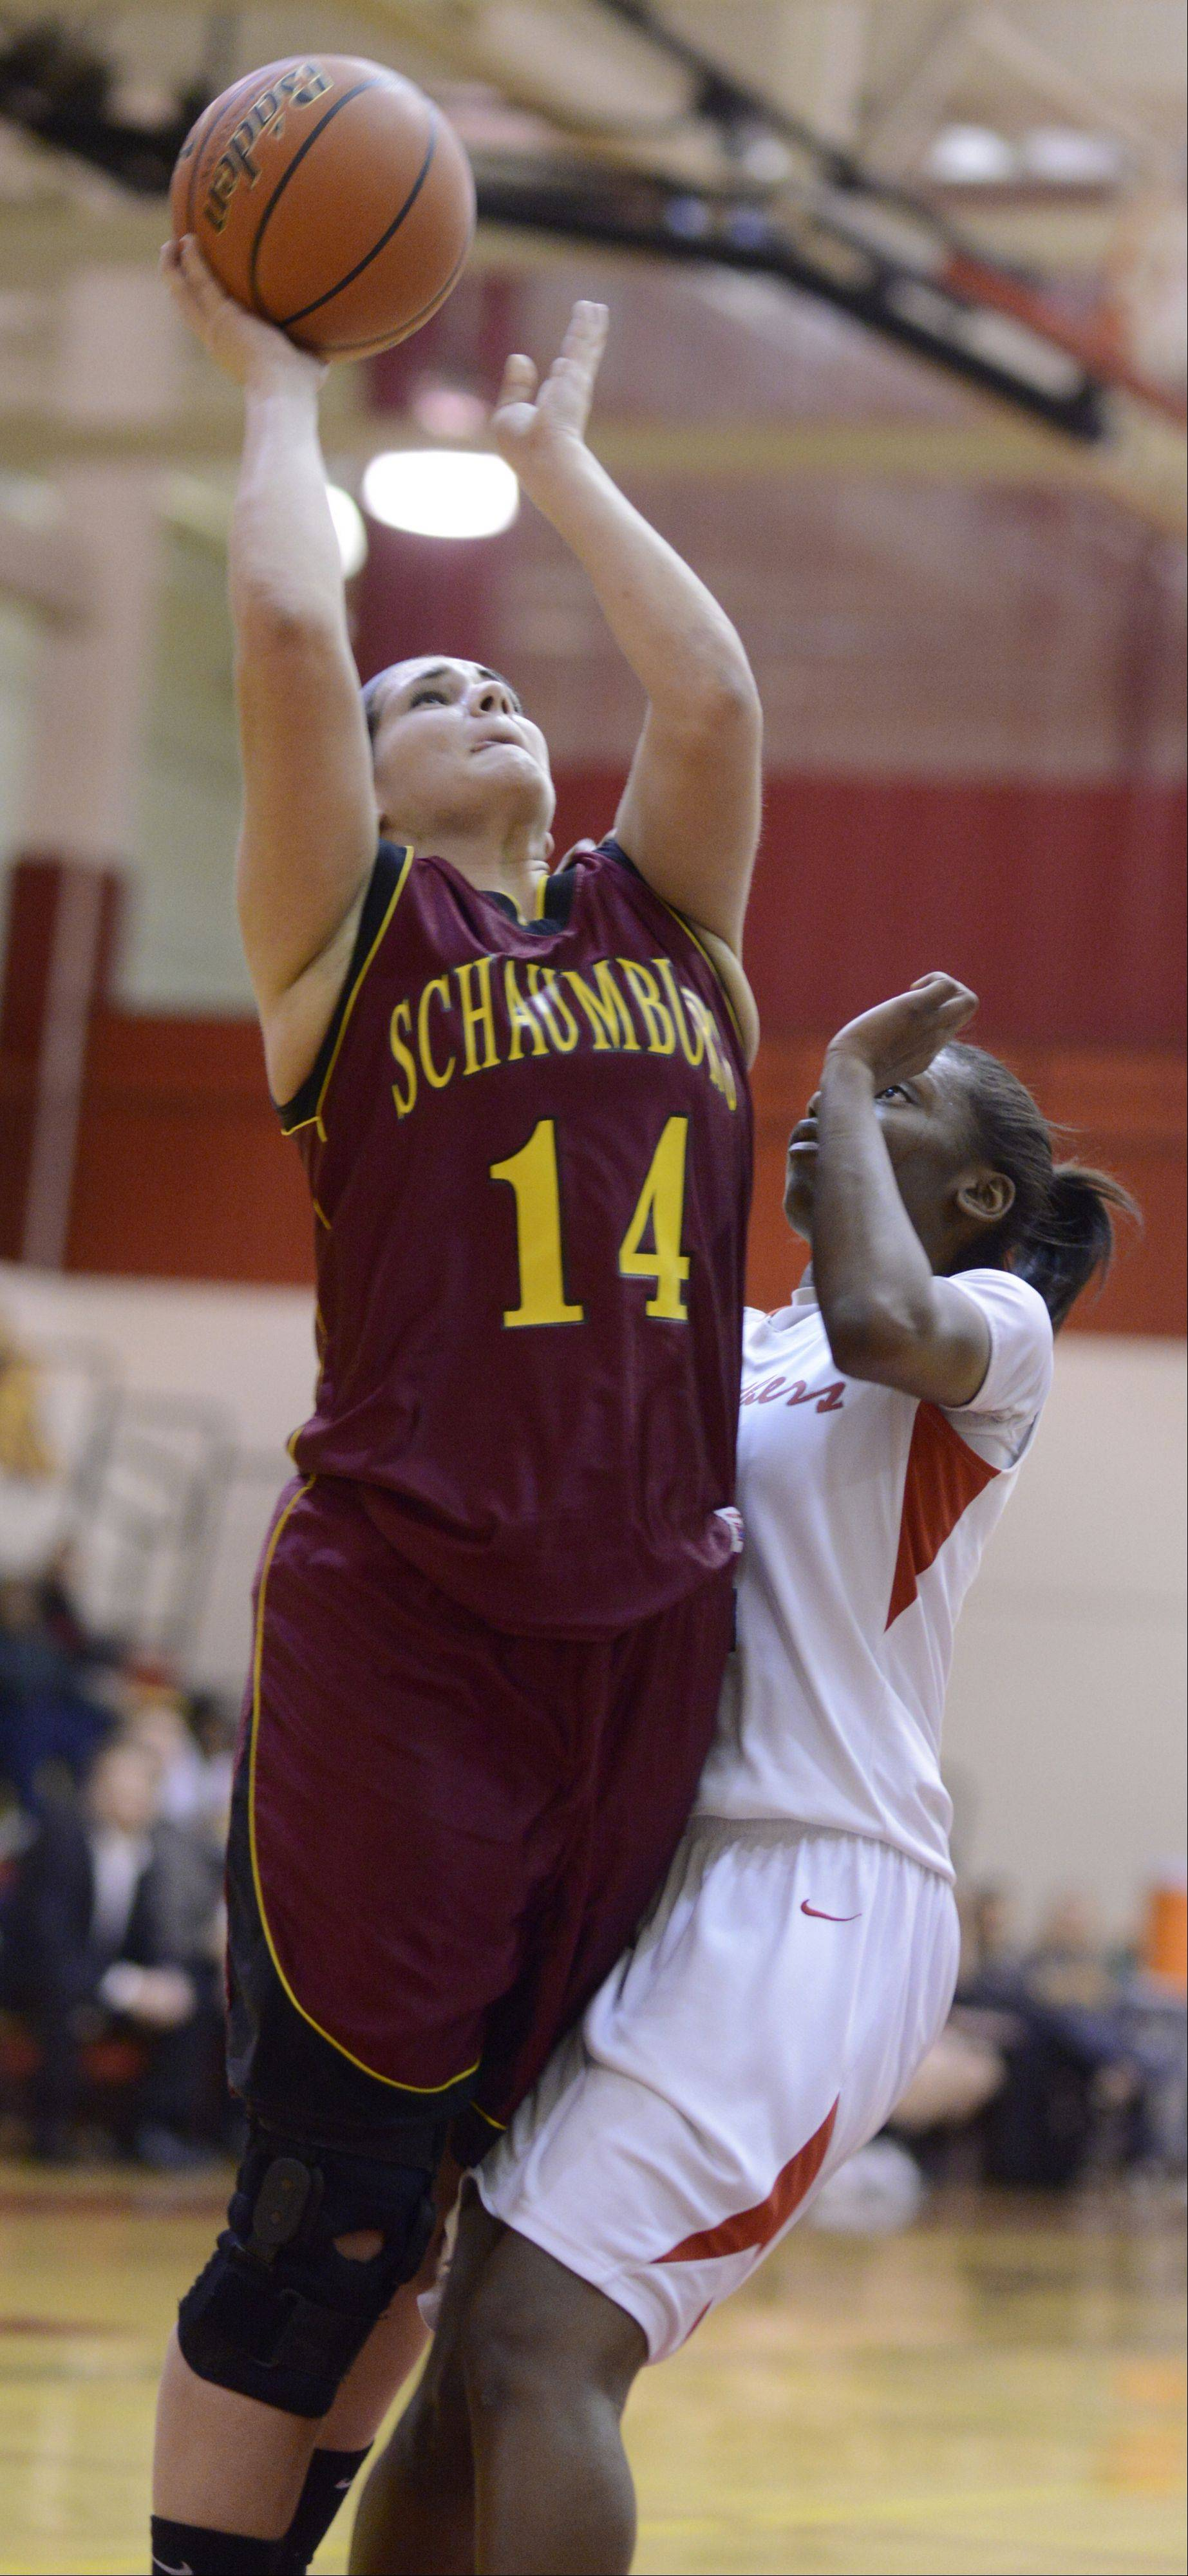 Images from the Schaumburg vs. Proviso East girls basketball game on Tuesday, February 12th, in Schaumburg.